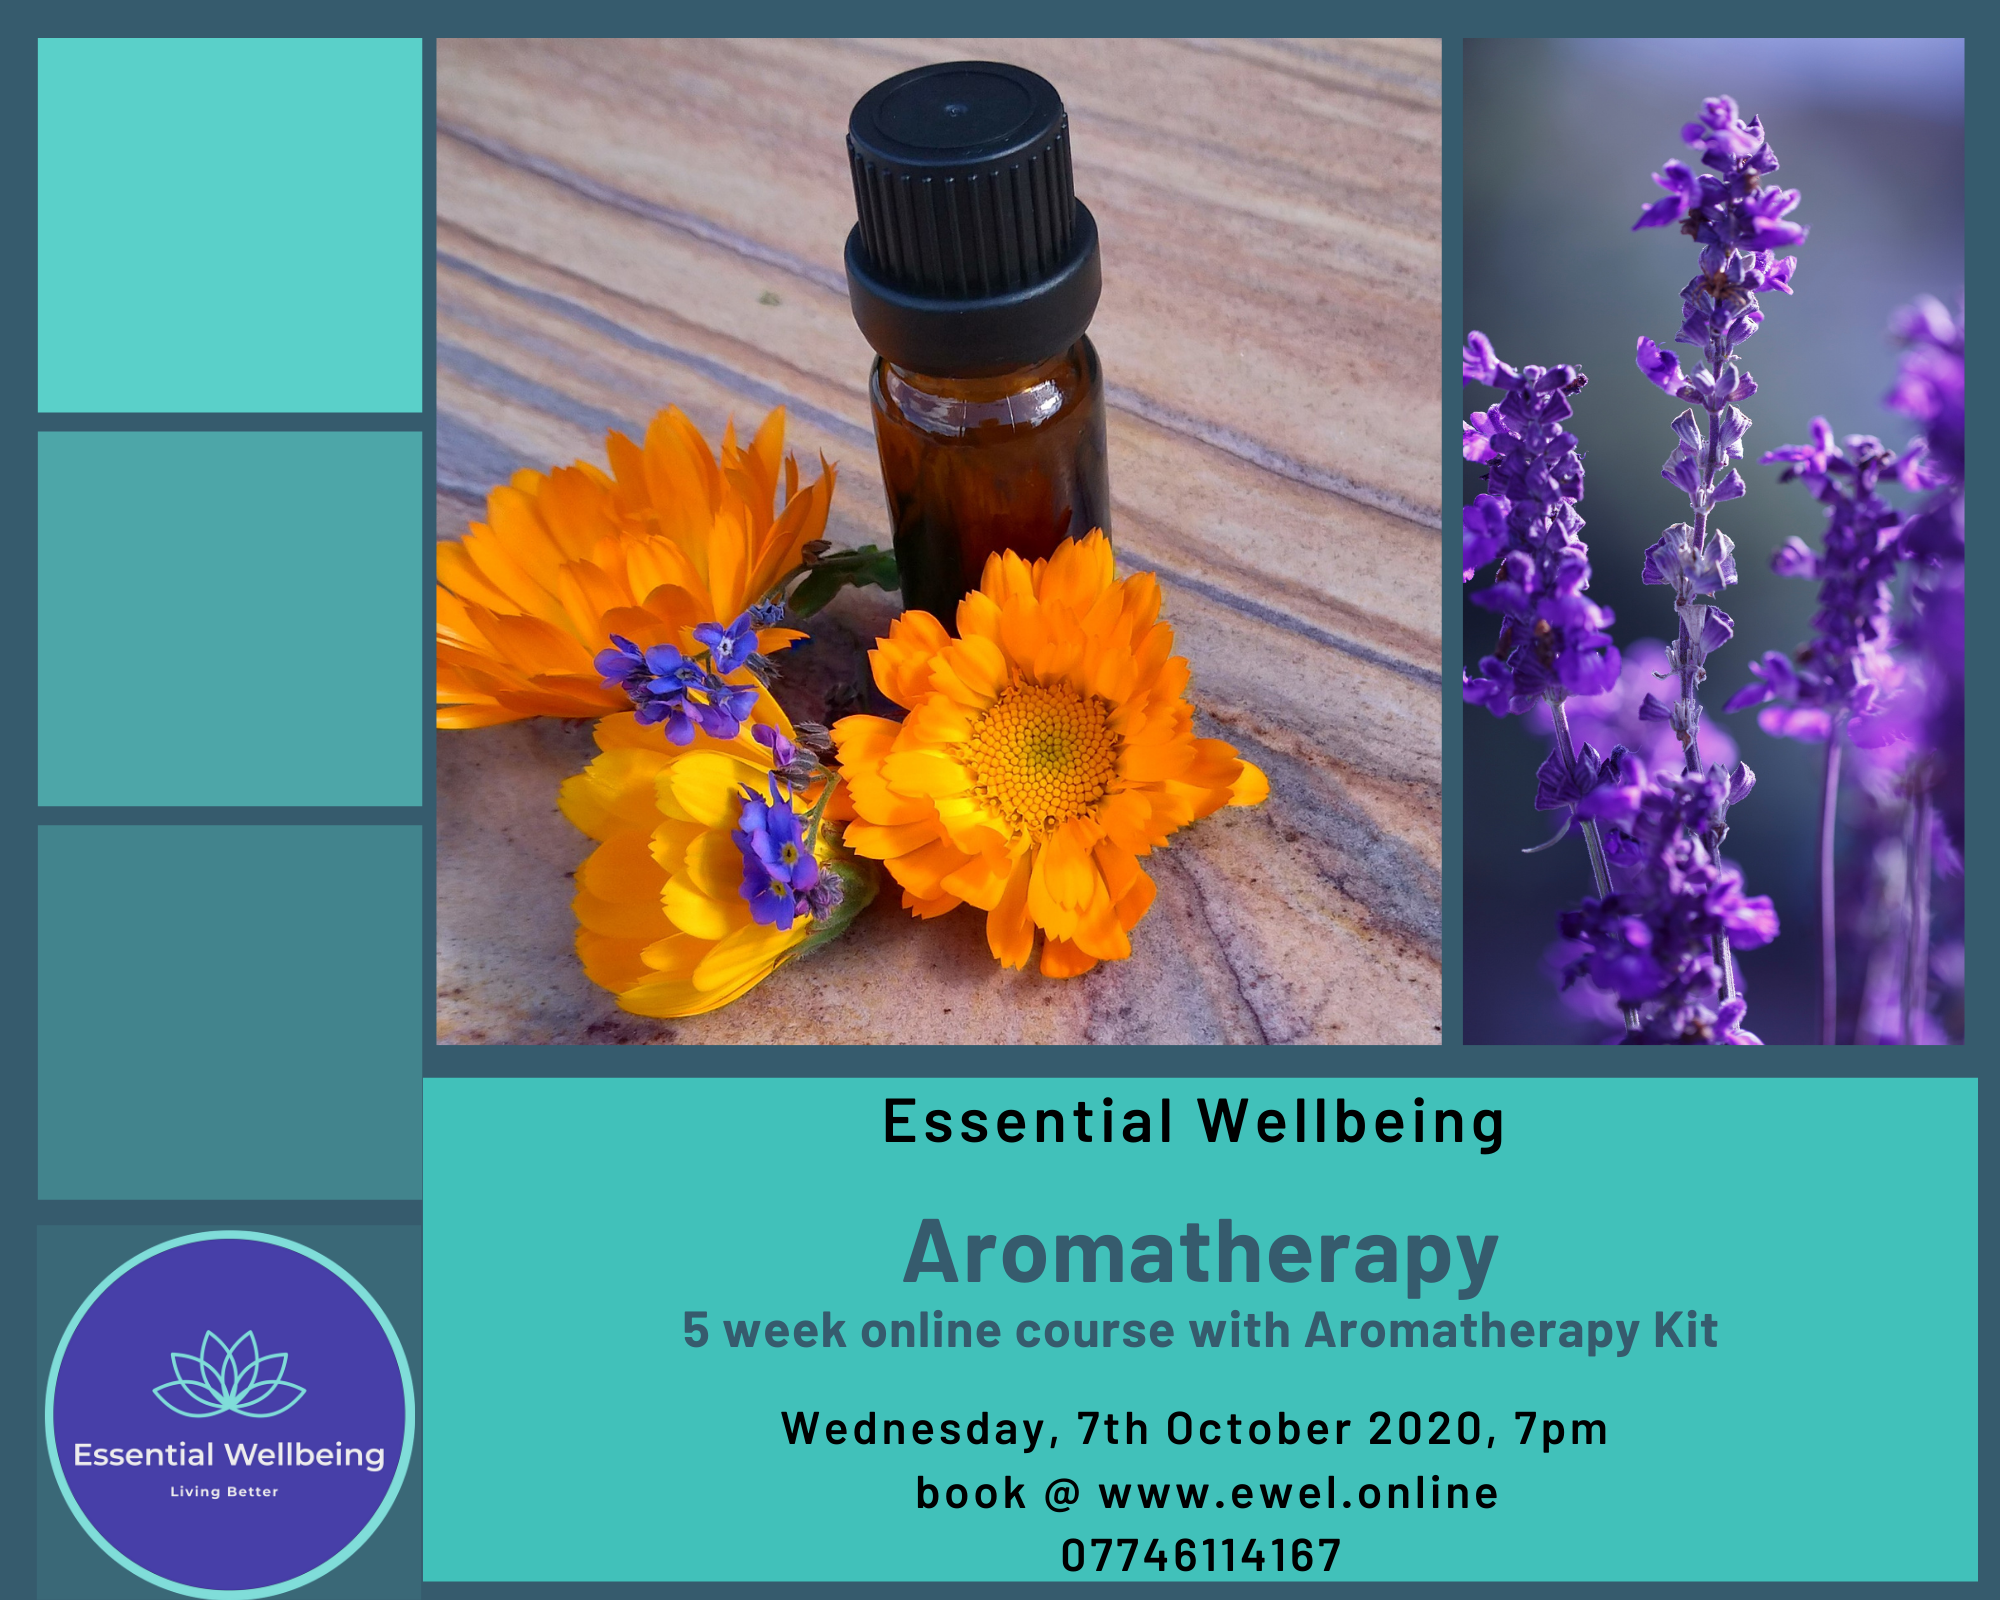 Aromatherapy 5 week Online Course with Kit